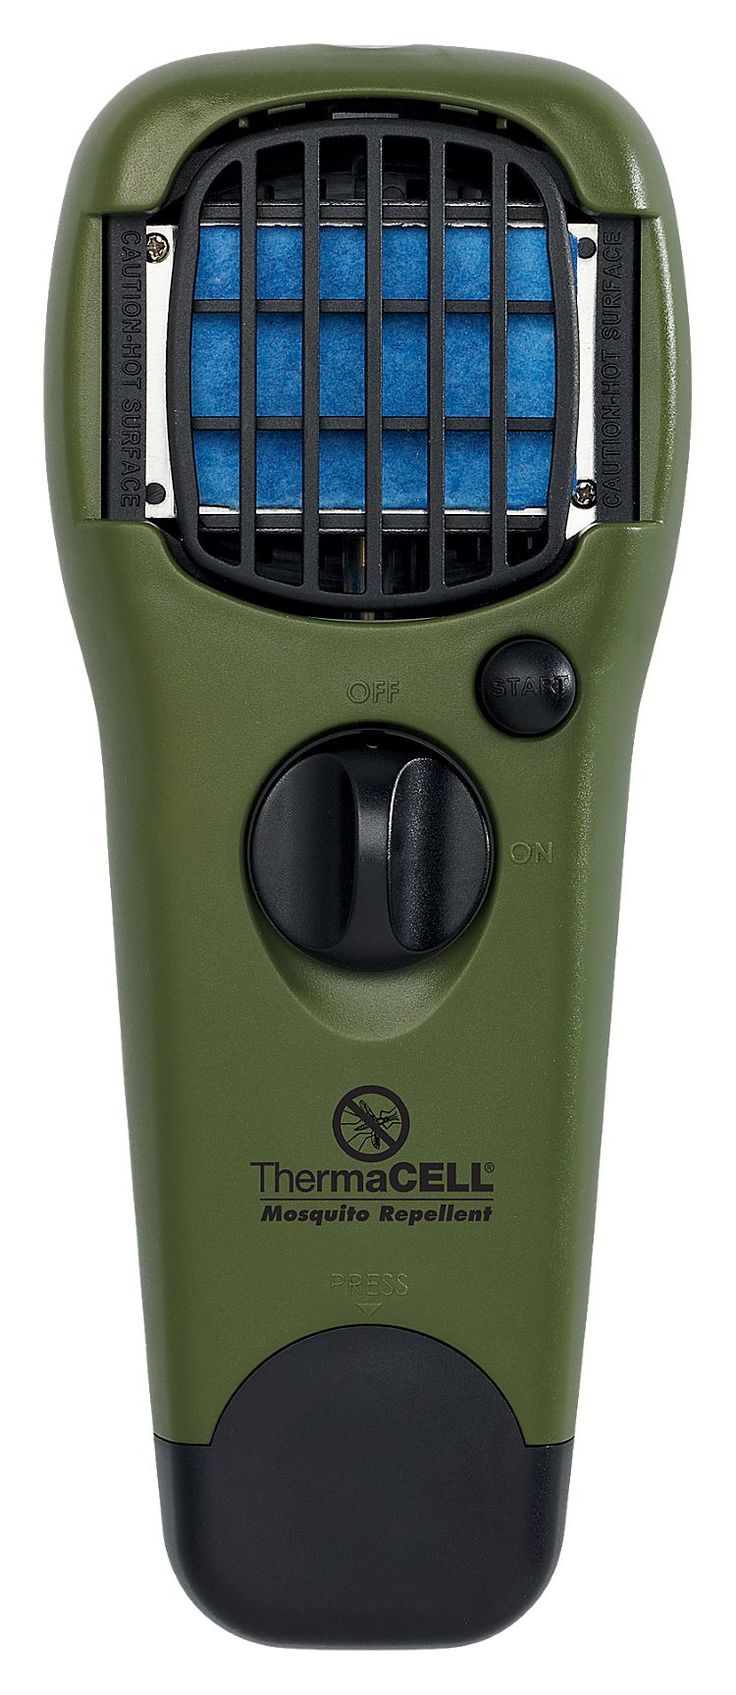 ThermaCELL Mosquito Repellent | Bass Pro Shops: The Best Hunting, Fishing, Camping & Outdoor Gear